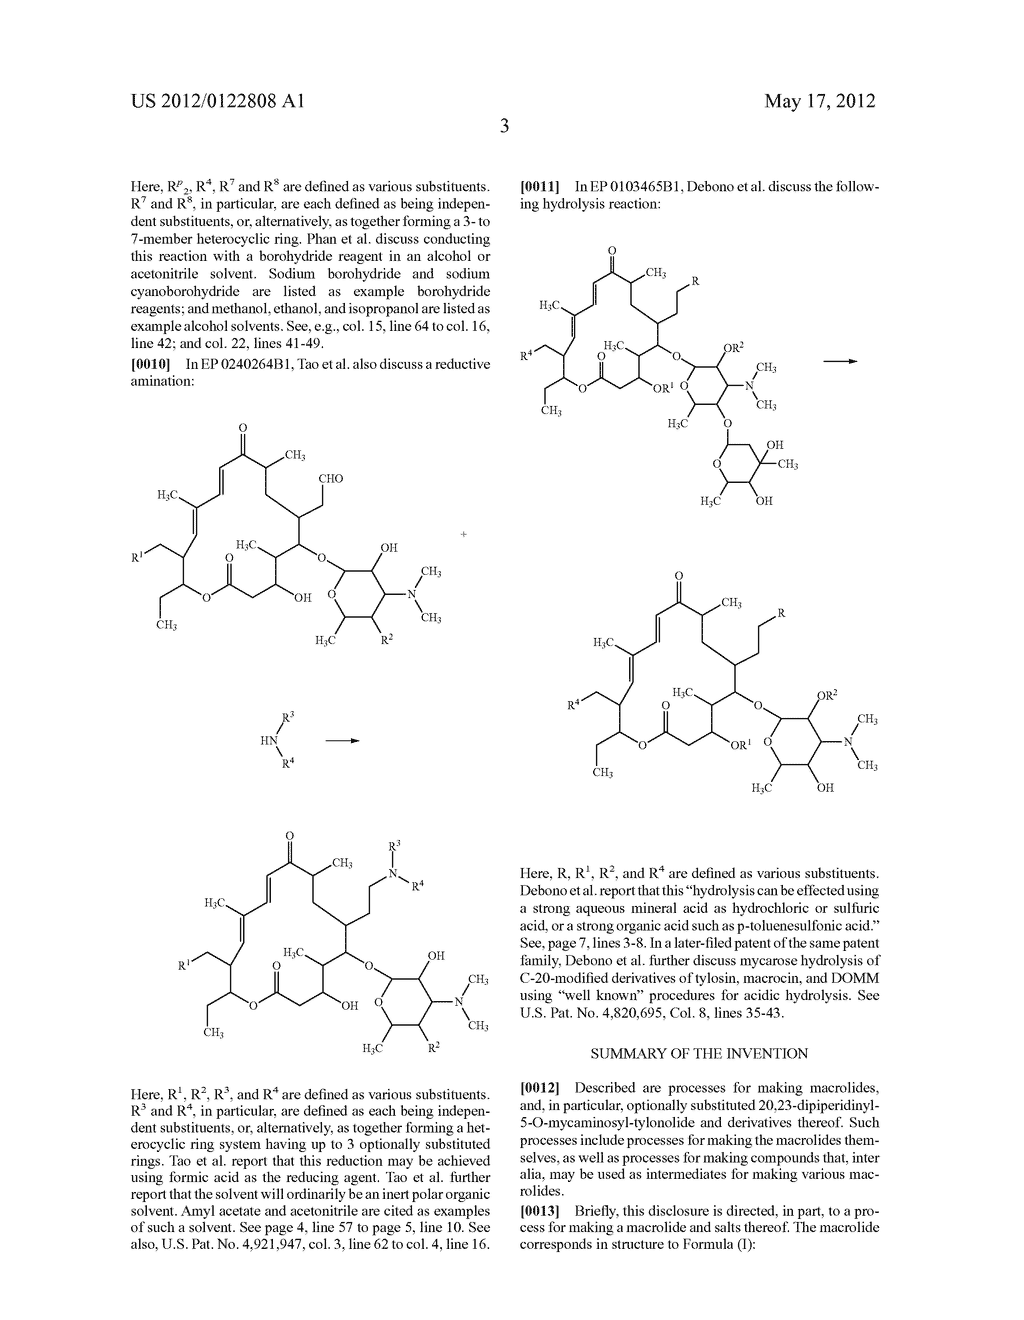 MACROLIDE SYNTHESIS PROCESS AND SOLID-STATE FORMS - diagram, schematic, and image 44